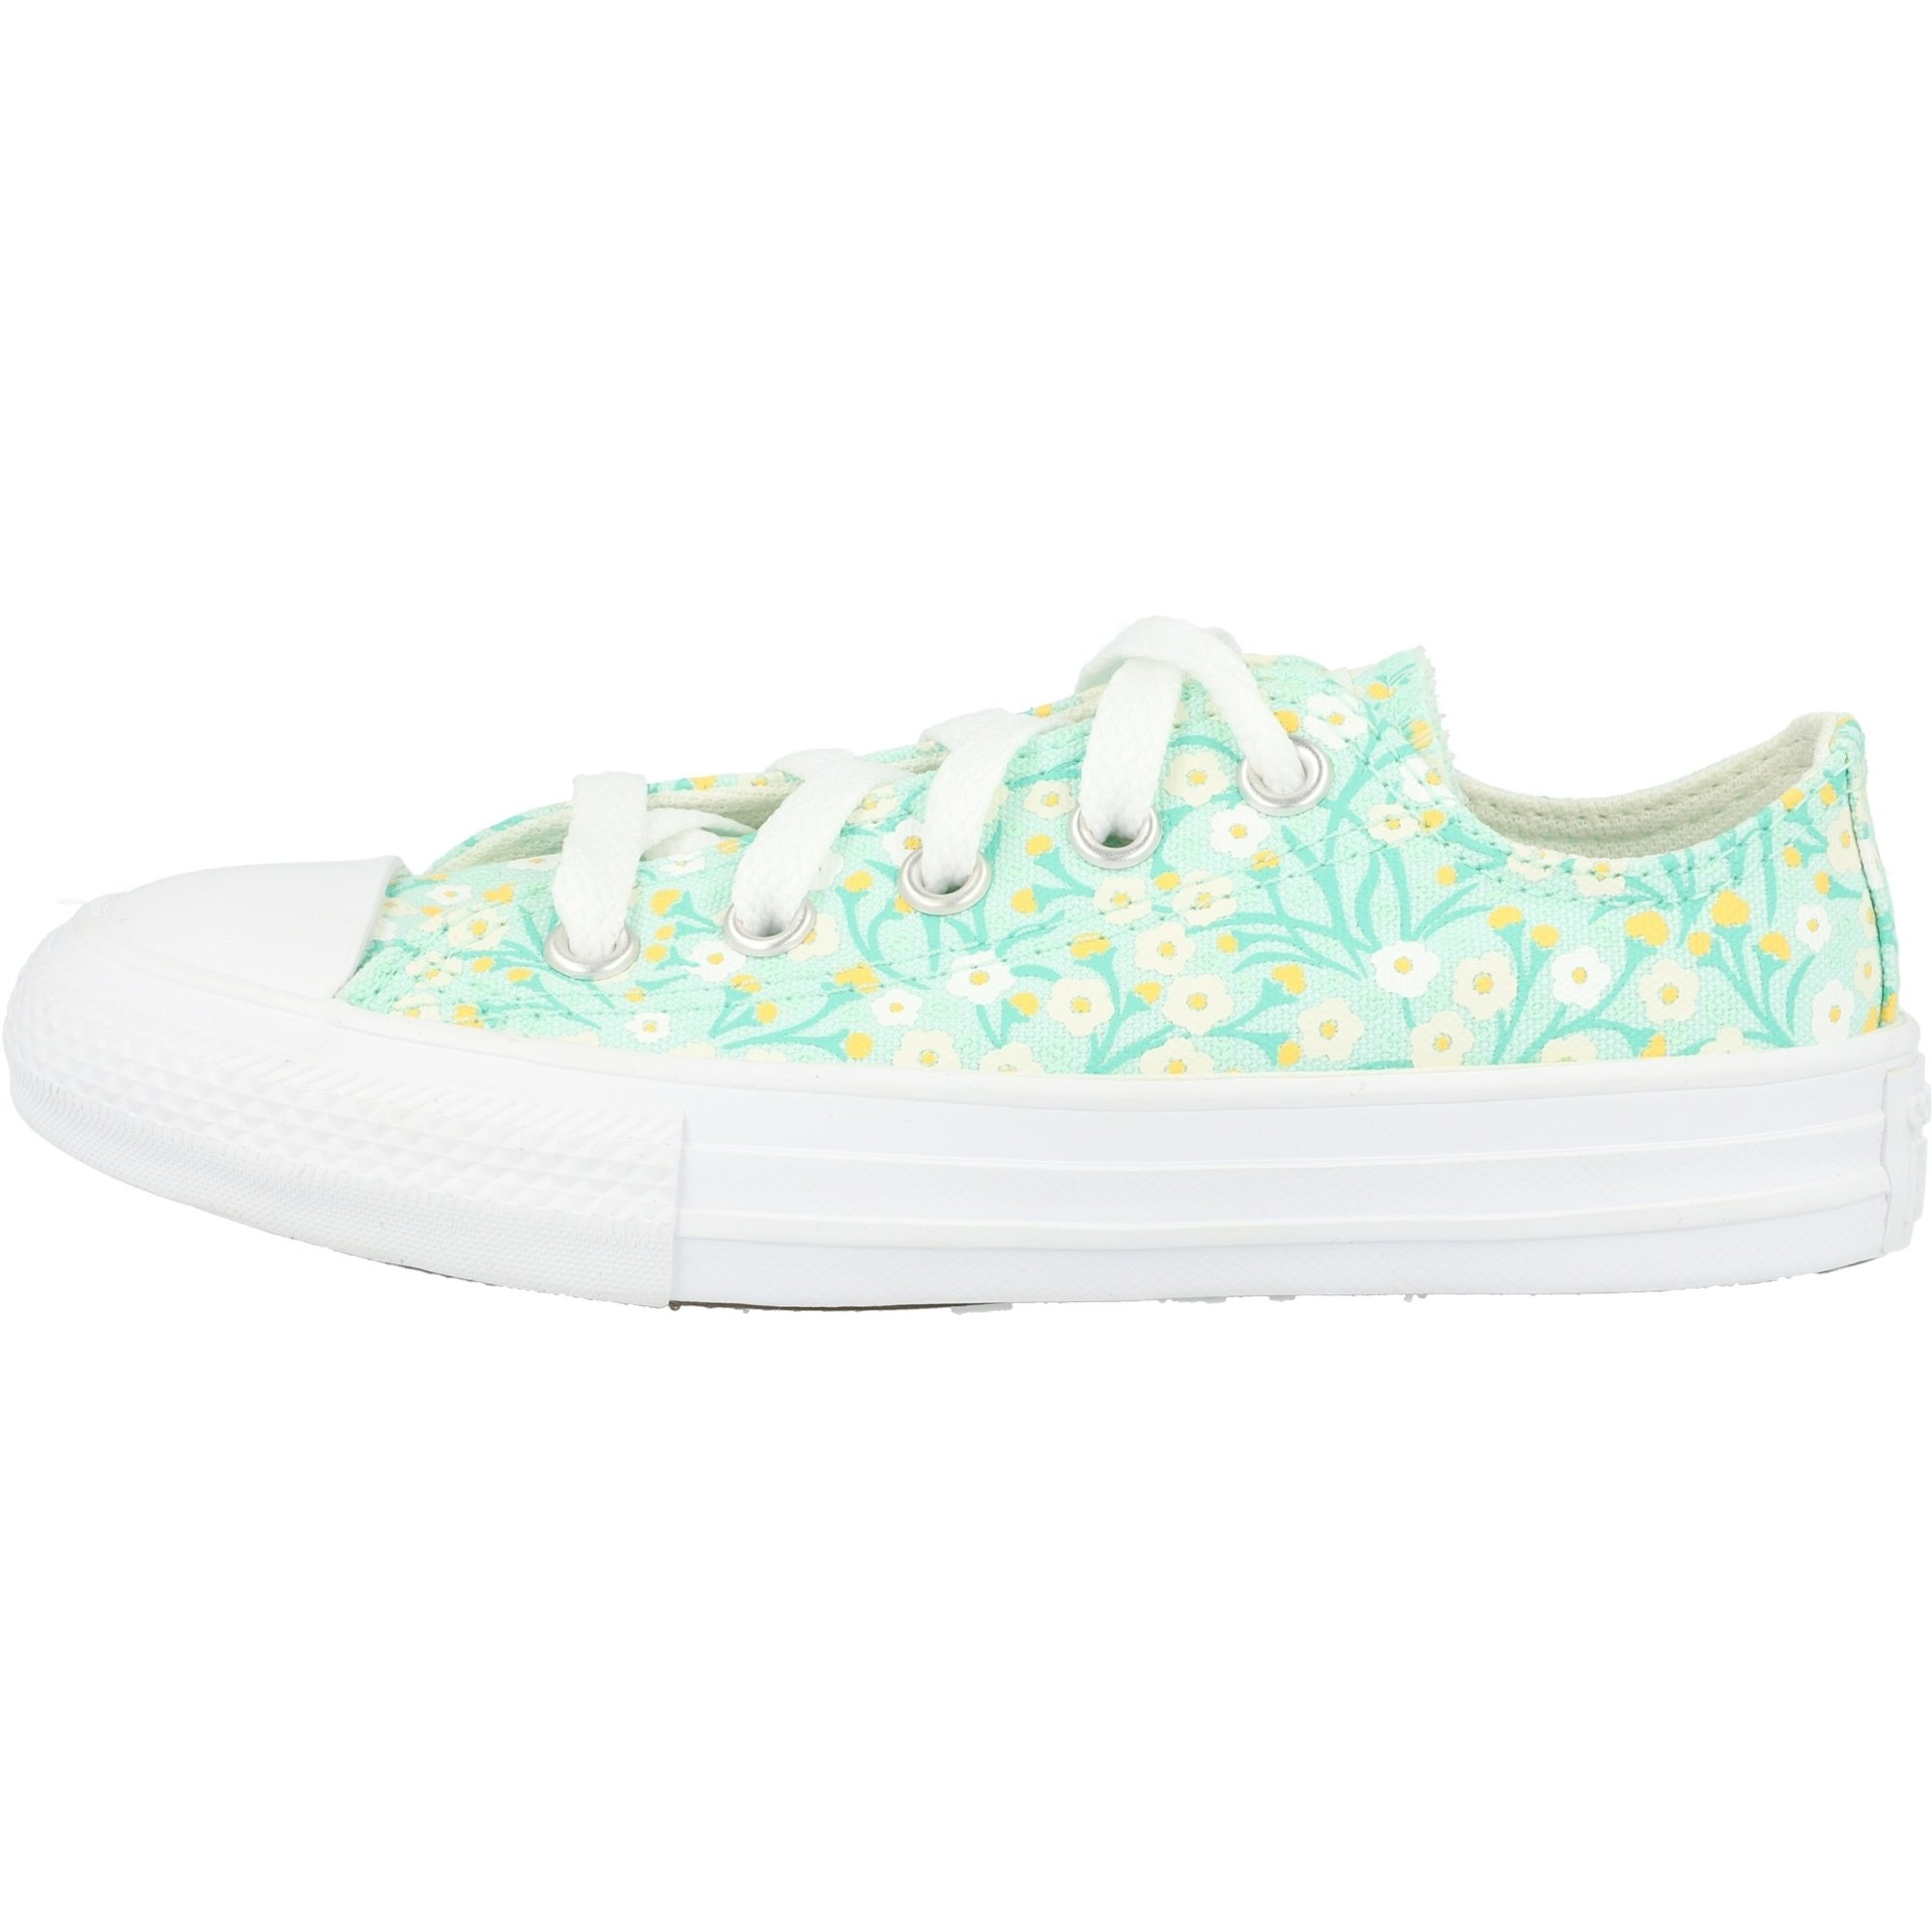 Converse Chuck Taylor All Star Ox Ditsy Floral Ocean Mint/White Canvas